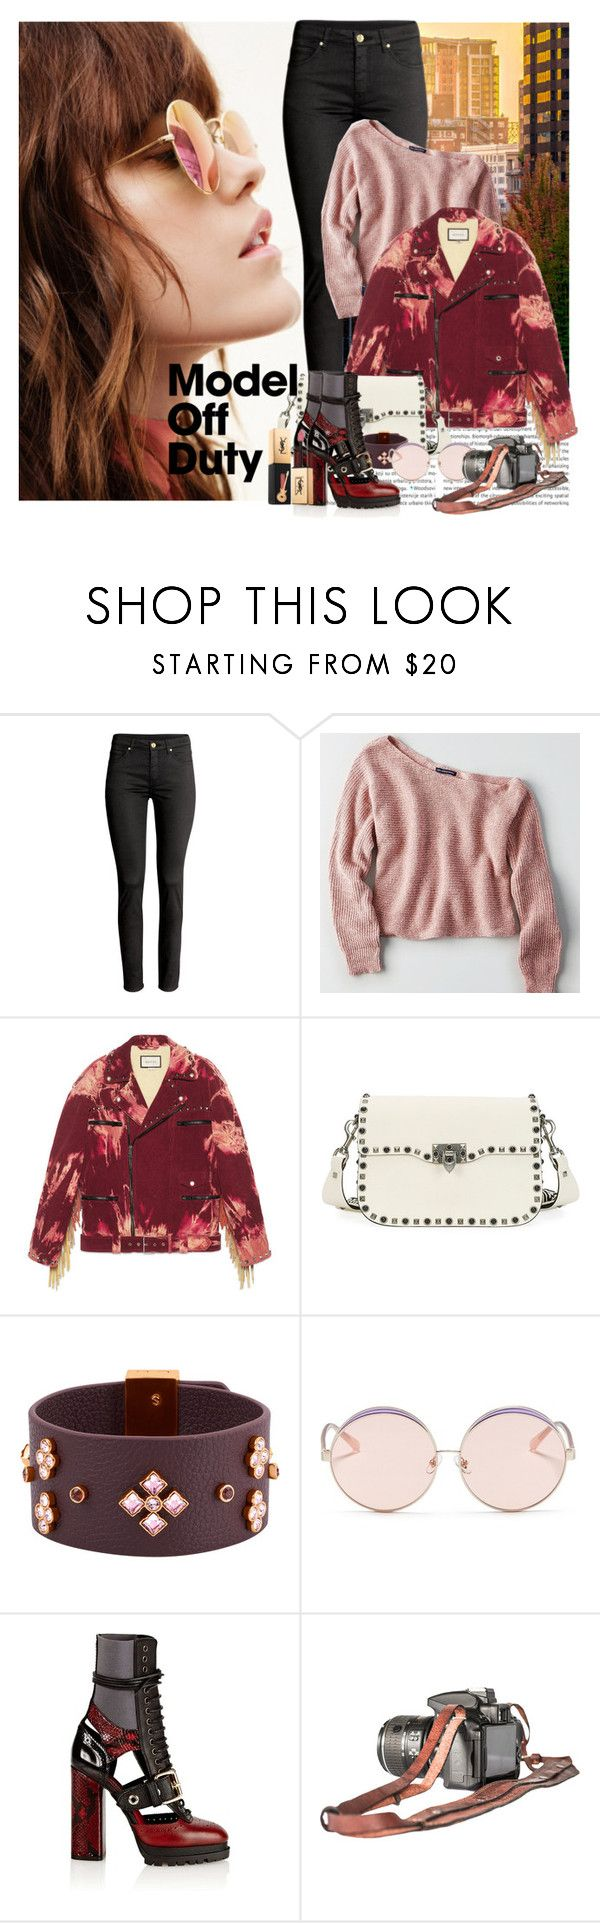 """""""Model Off Duty"""" by mimjersey ❤ liked on Polyvore featuring American Eagle Outfitters, Gucci, Valentino, Henri Bendel, N°21, Burberry and Yves Saint Laurent"""